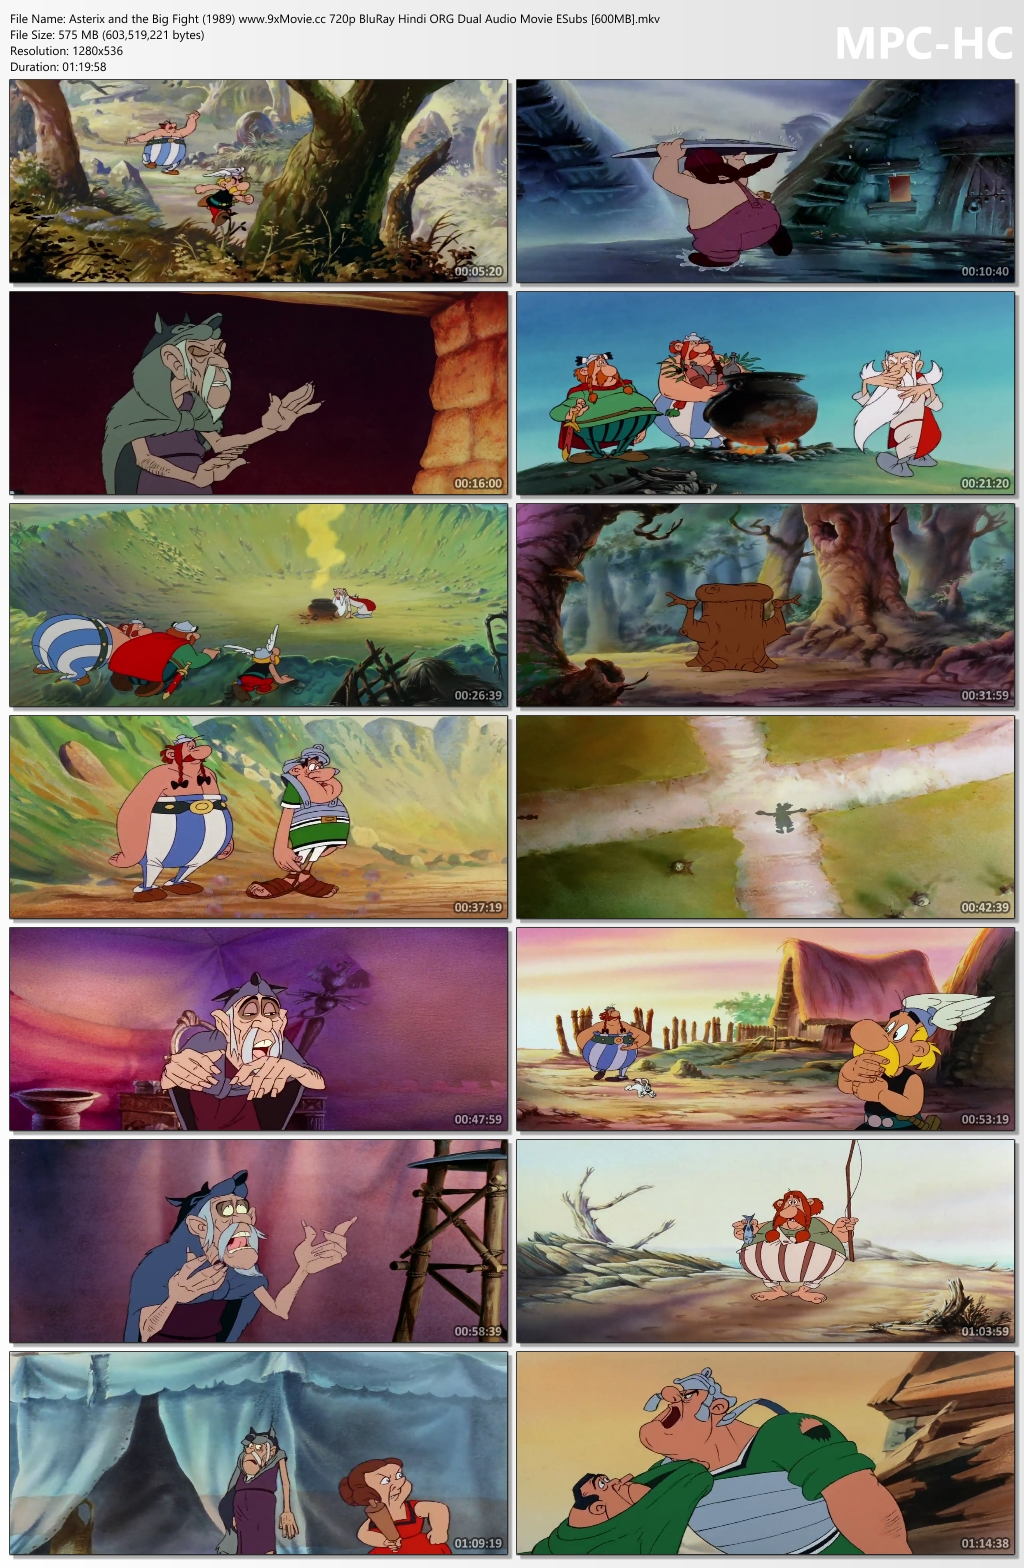 Asterix-and-the-Big-Fight-1989-www-9x-Movie-cc-720p-Blu-Ray-Hindi-ORG-Dual-Audio-Movie-ESubs-600-MB-